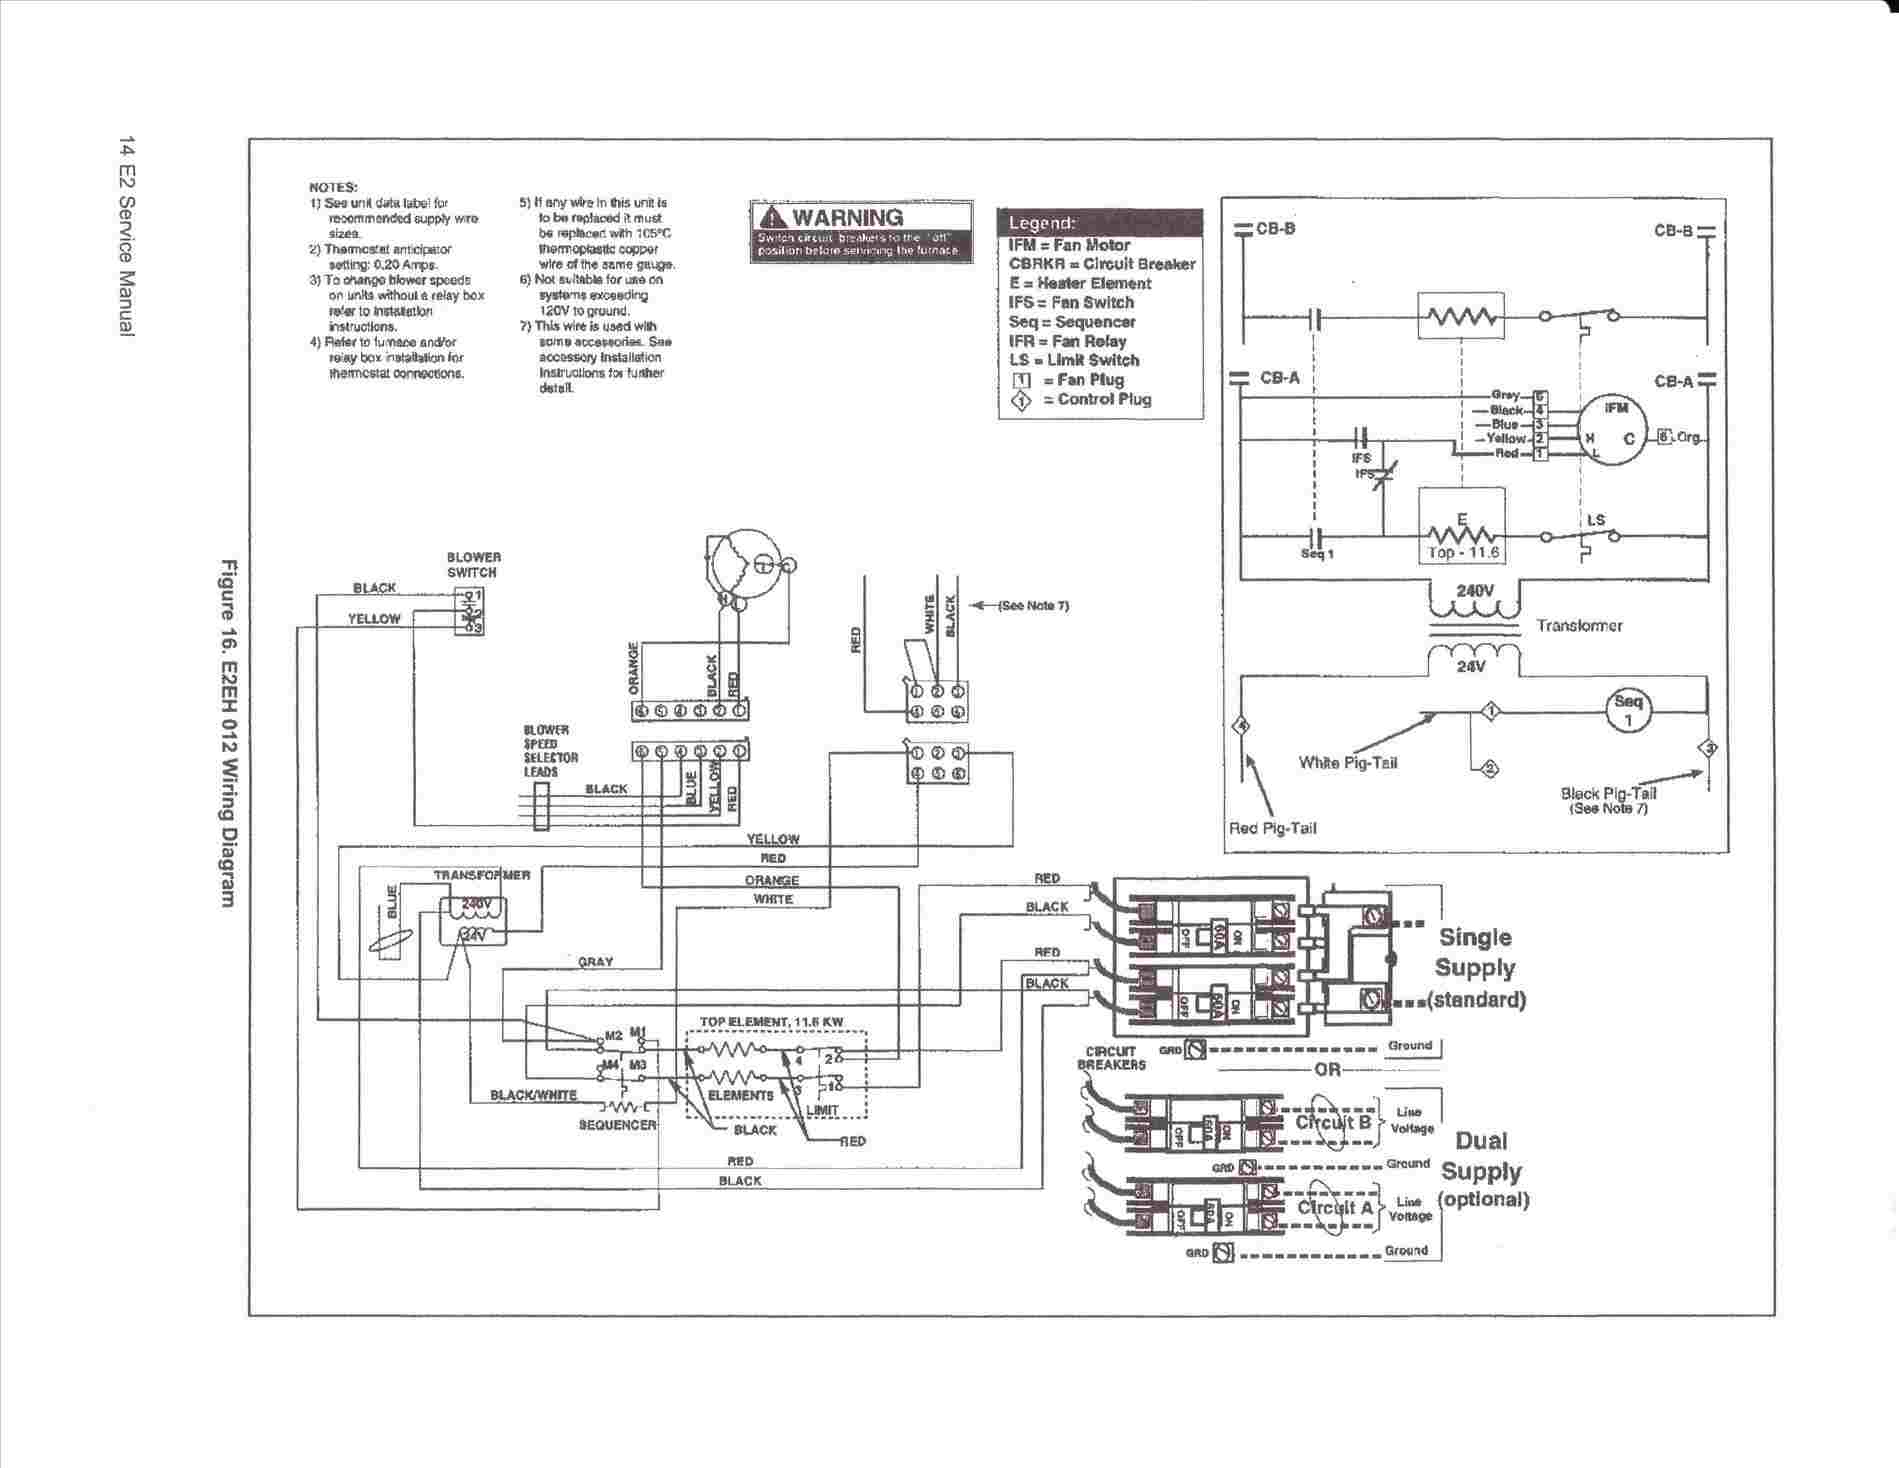 Coleman Pop Up Wiring Harness Diagram - Wiring Diagram Schematics • - Coleman Pop Up Trailer Wiring Diagram